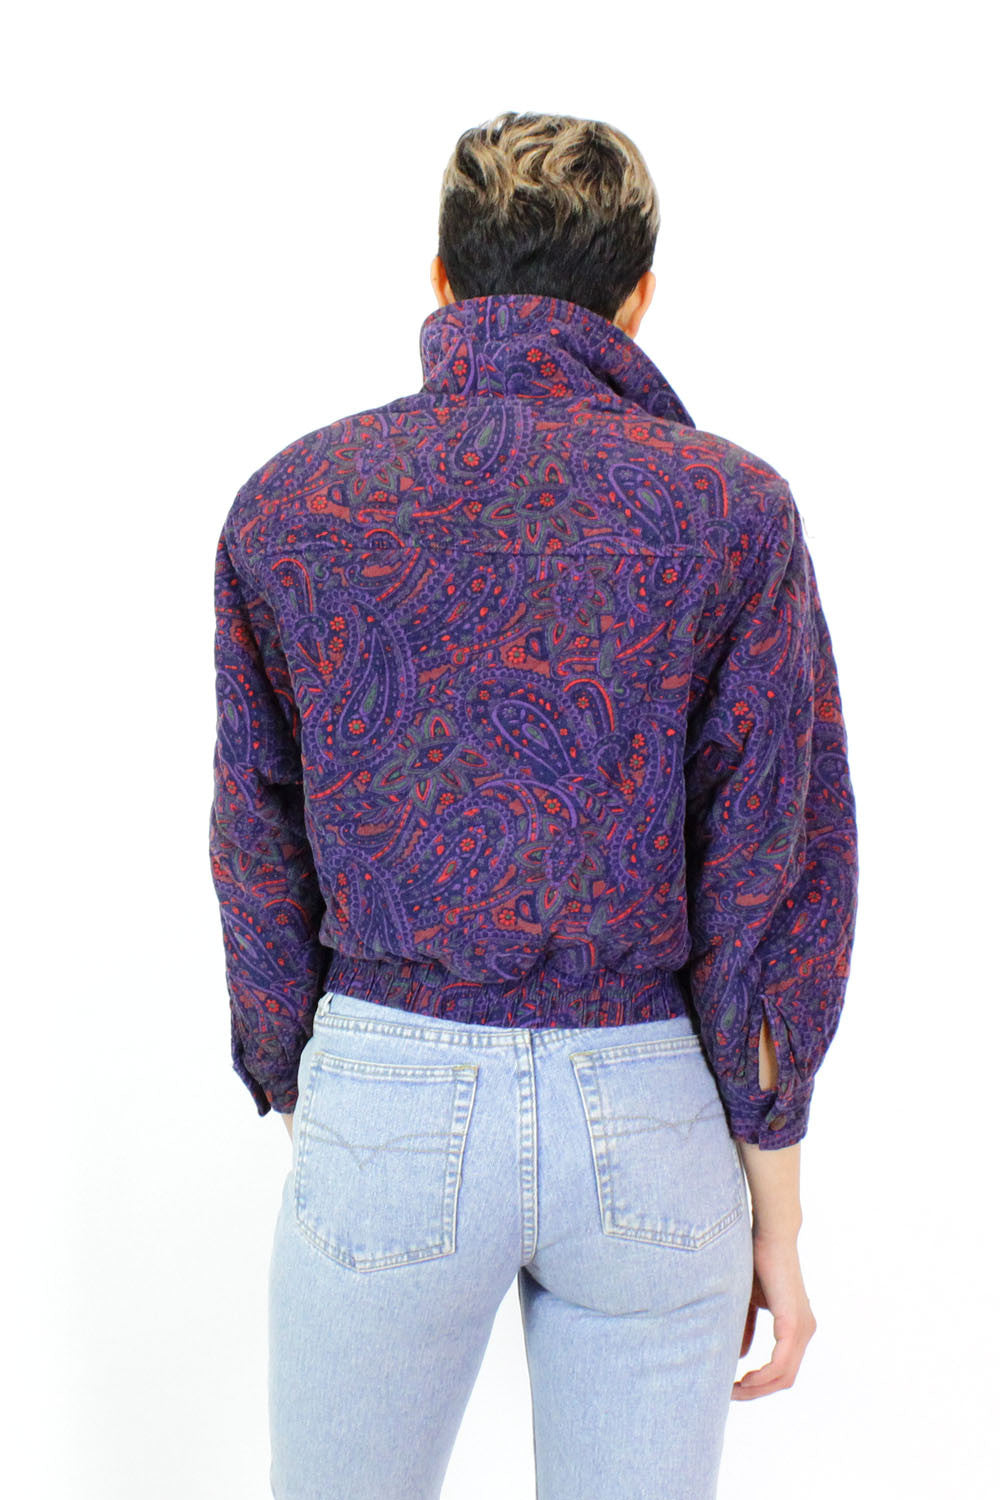 Saks Fifth Ave Paisley Puff Jacket S